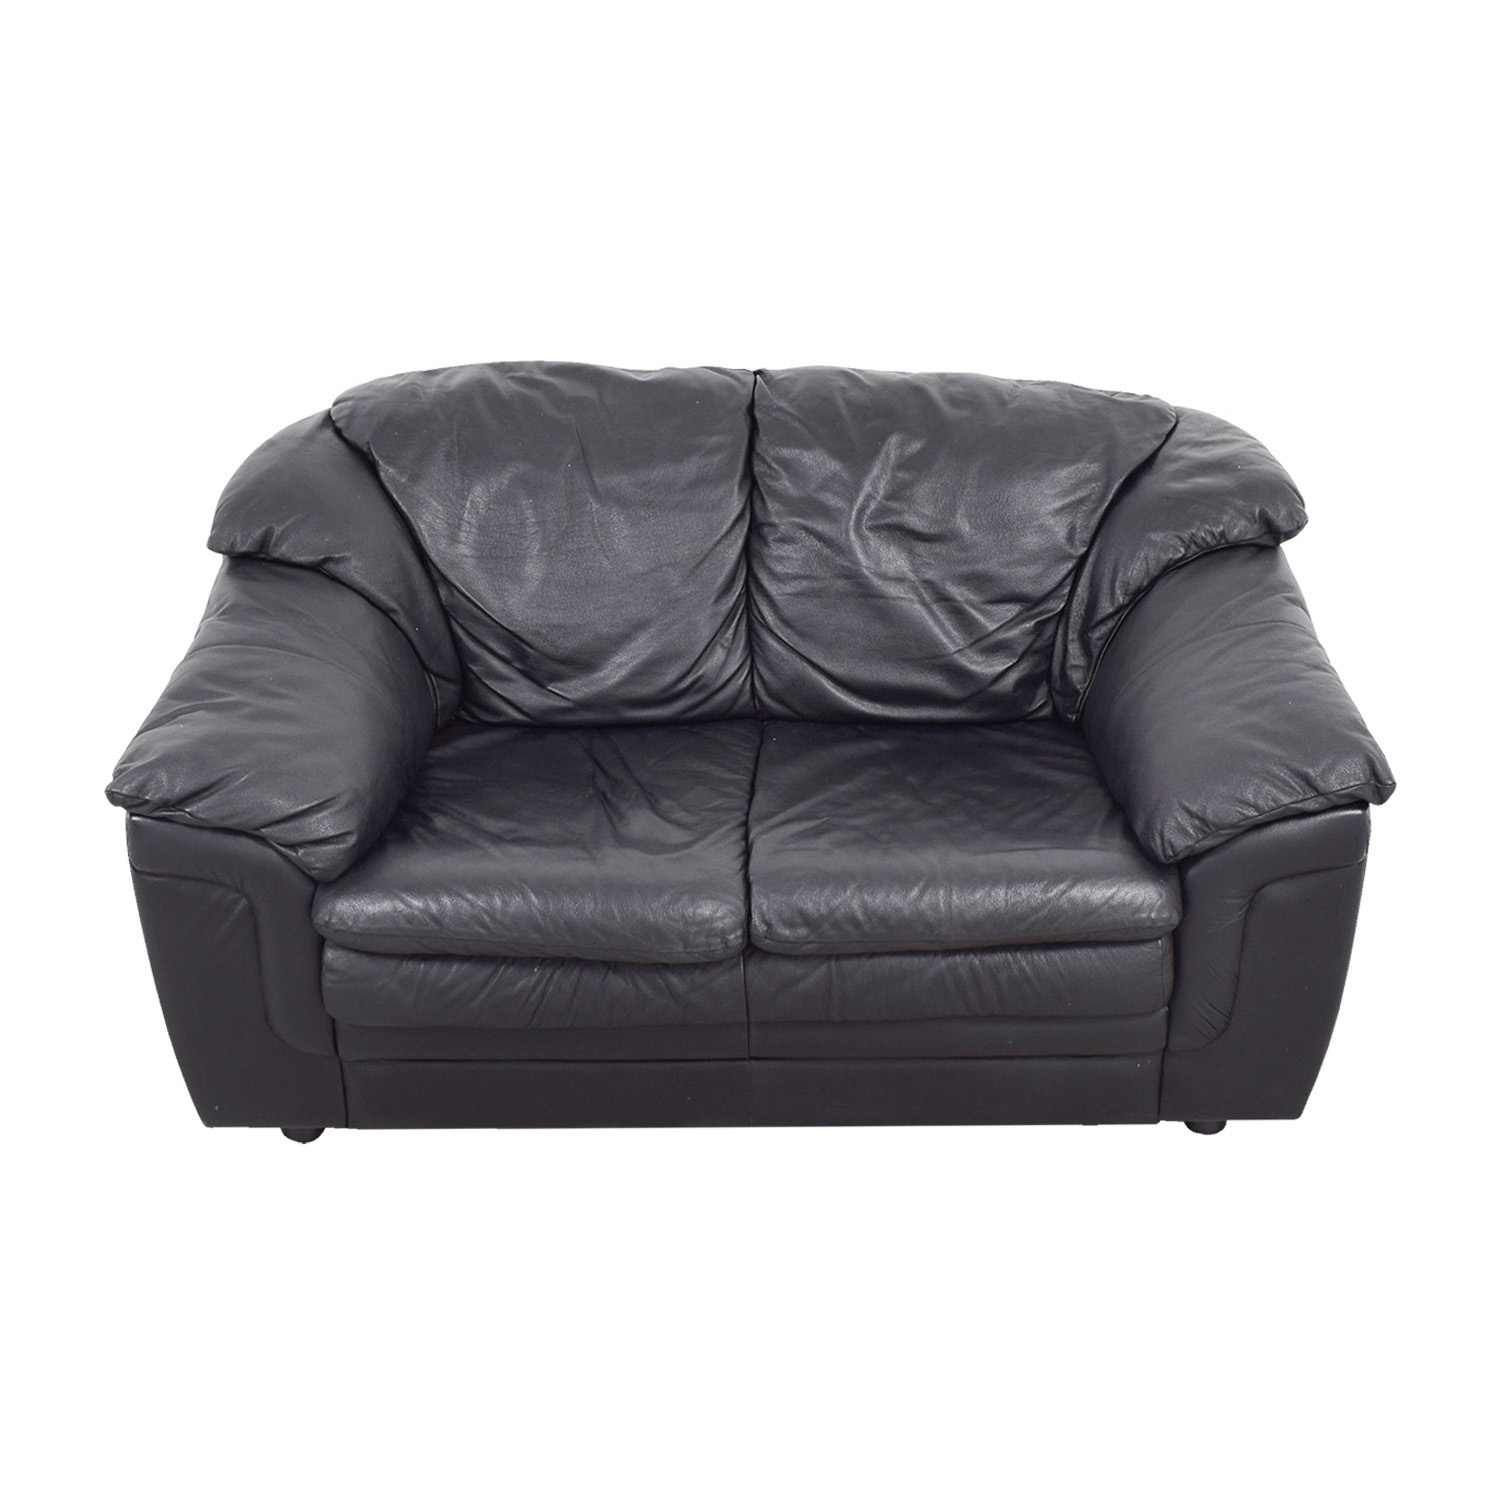 shop Jennifer Leather Black Italian Leather Love Seat Jennifer Leather Loveseats